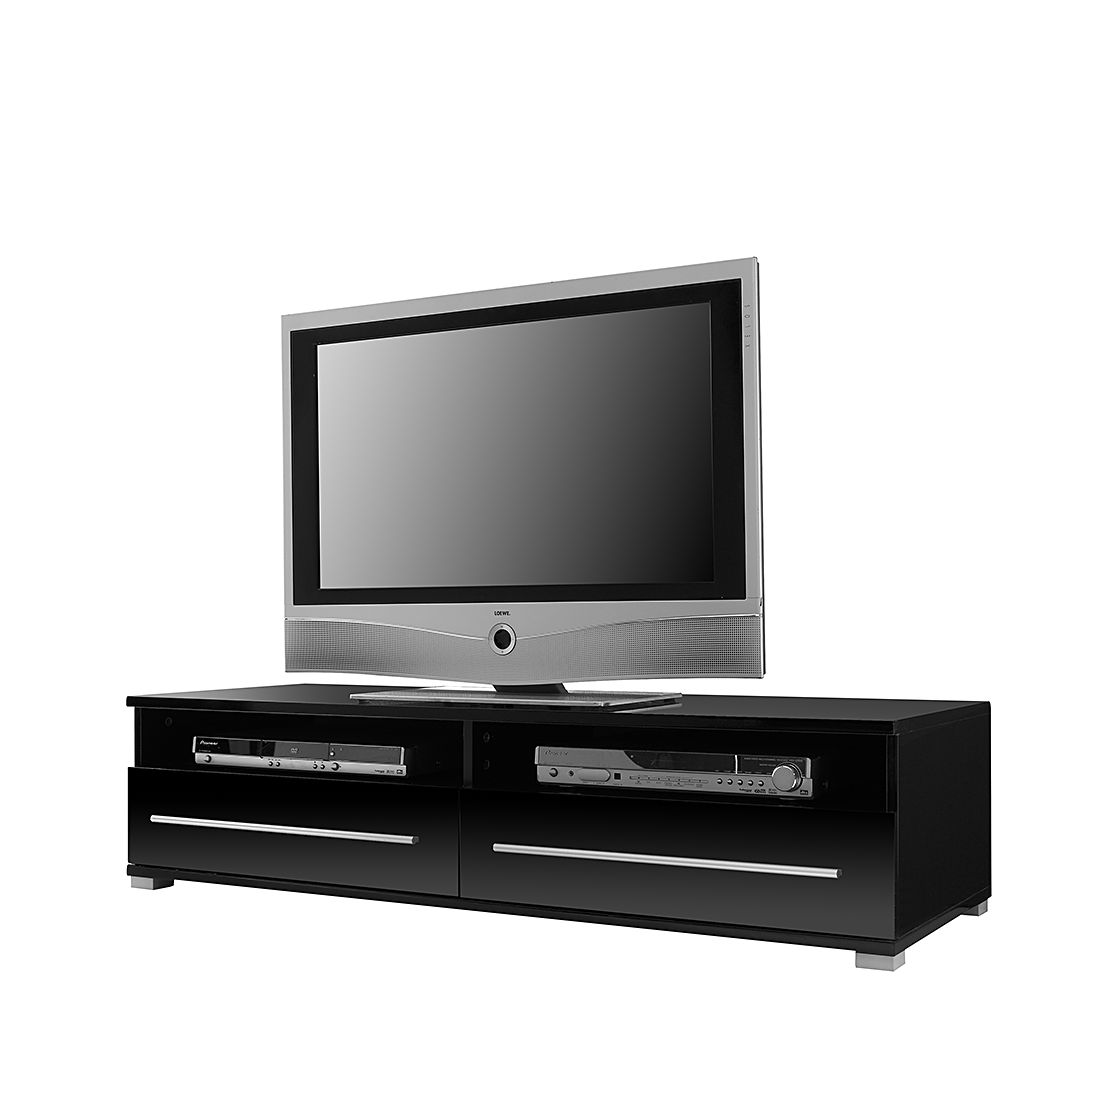 tv lowboard mert schwarz tv lowboard mert 2. Black Bedroom Furniture Sets. Home Design Ideas